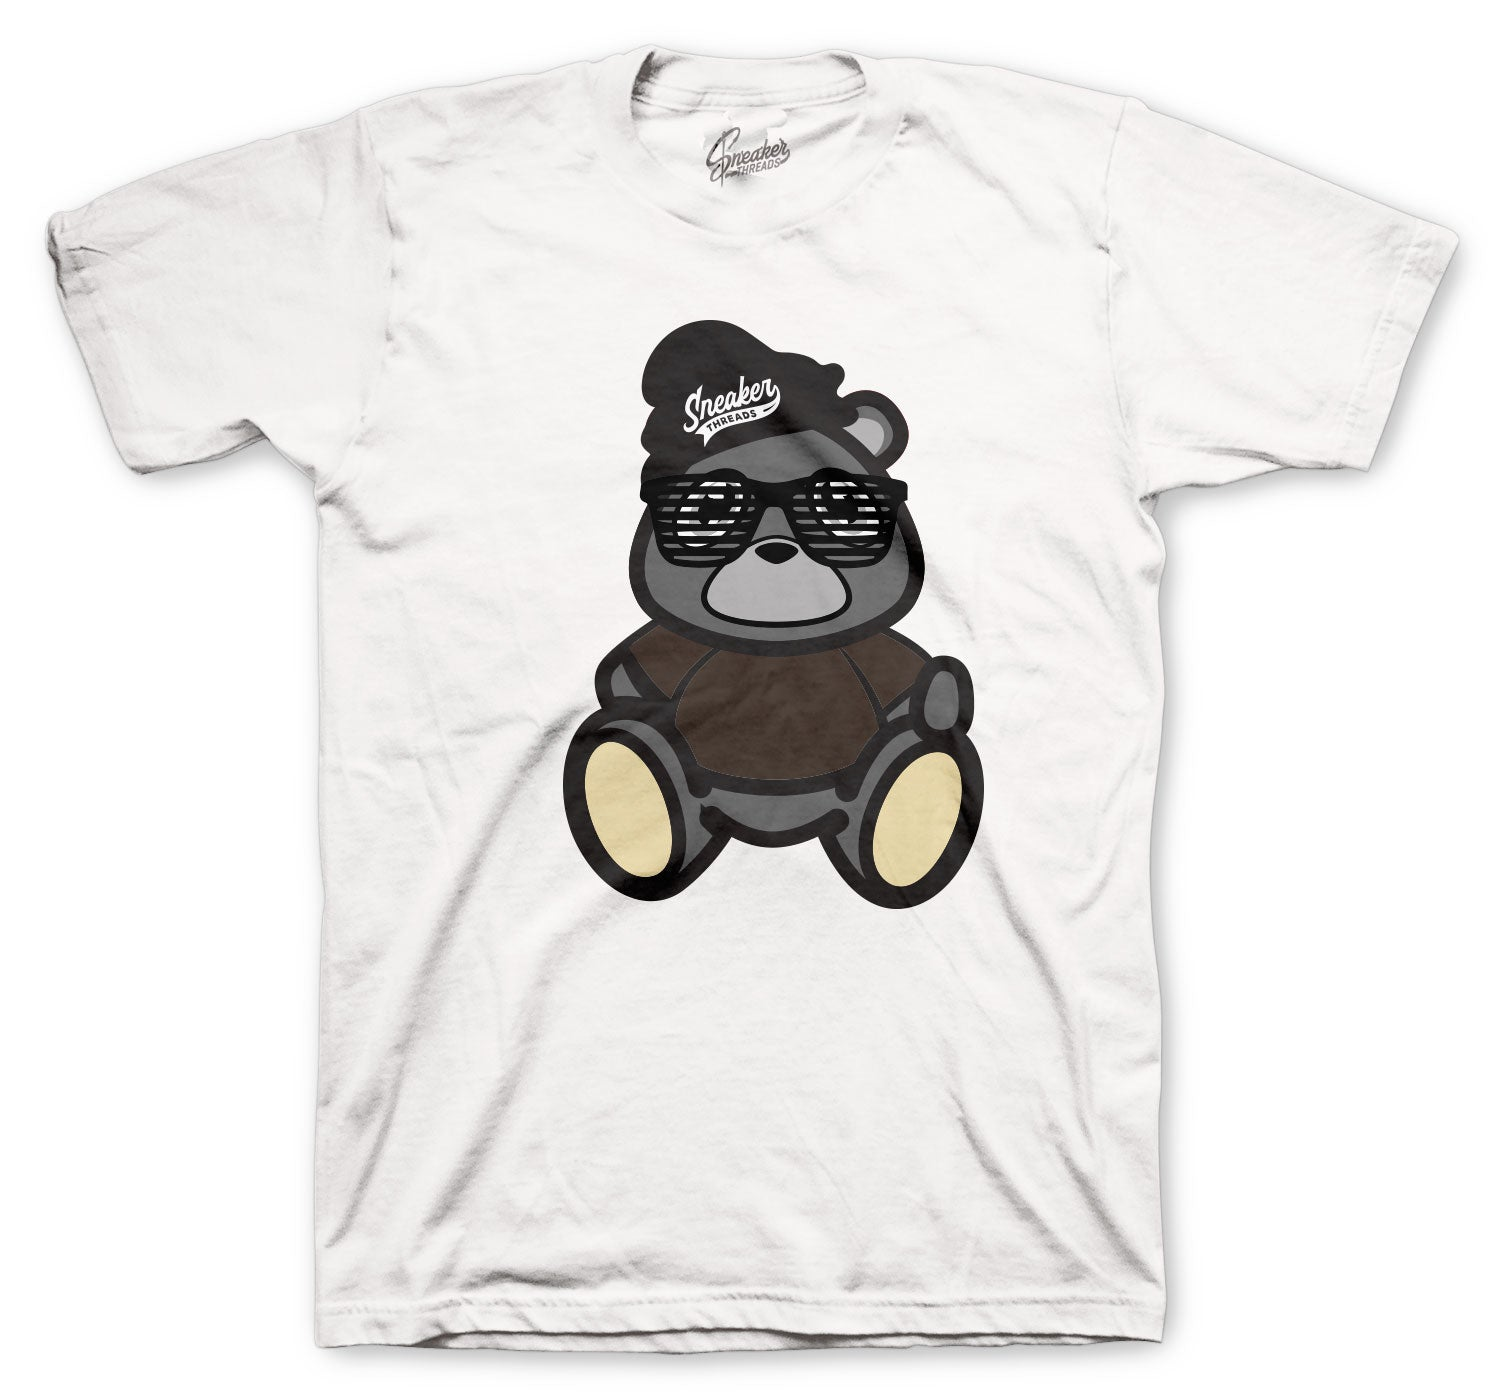 Yeezy Zyon Shirt - Play Bear - White